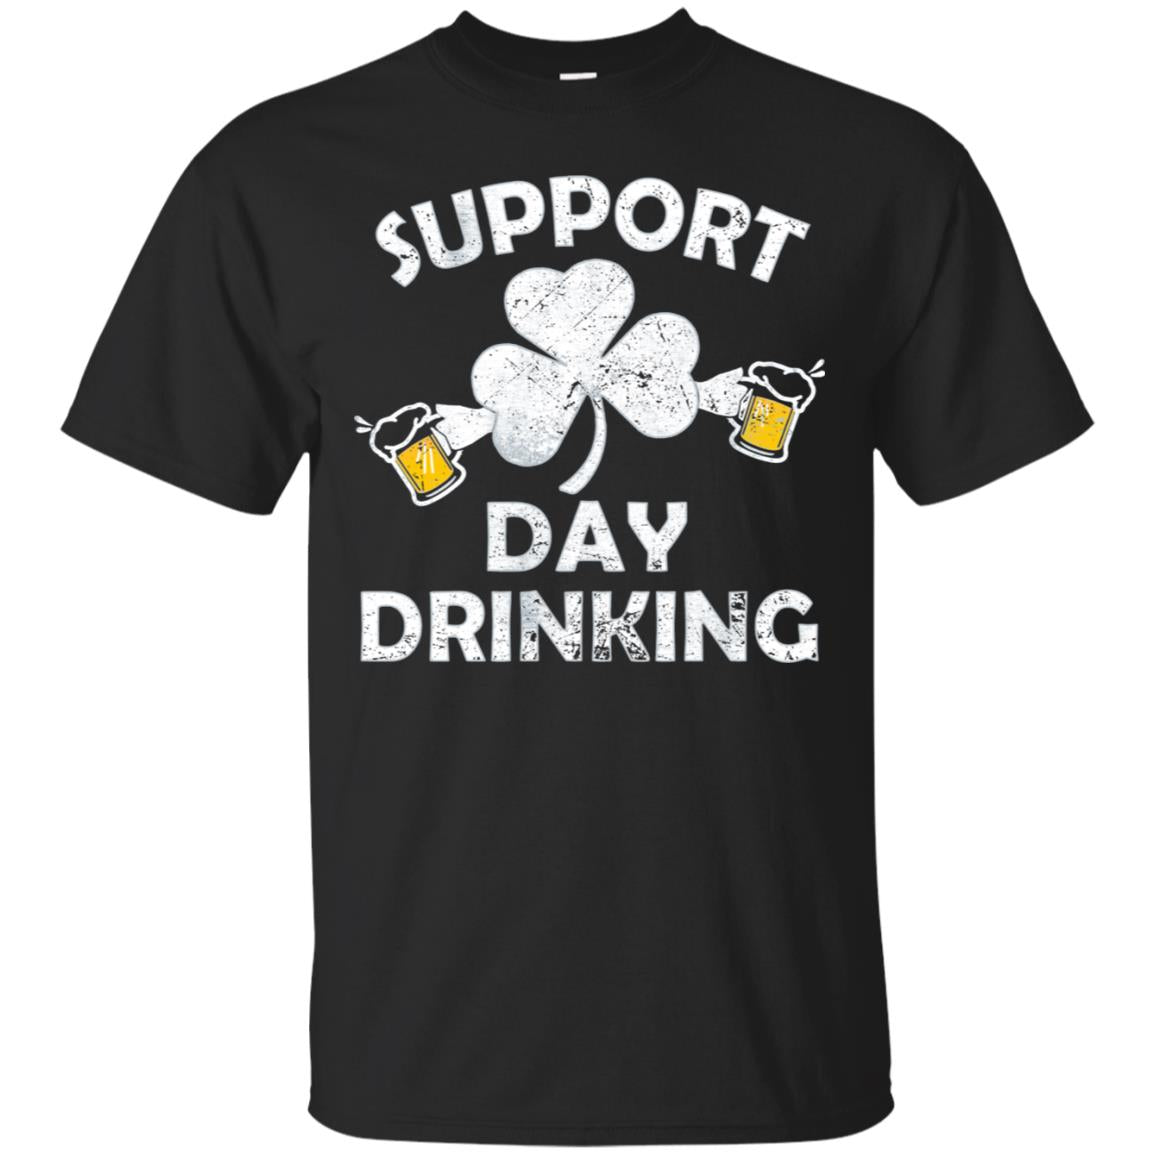 Support Day Drinking Shirt Funny Drinking Gift T-Shirt 99promocode